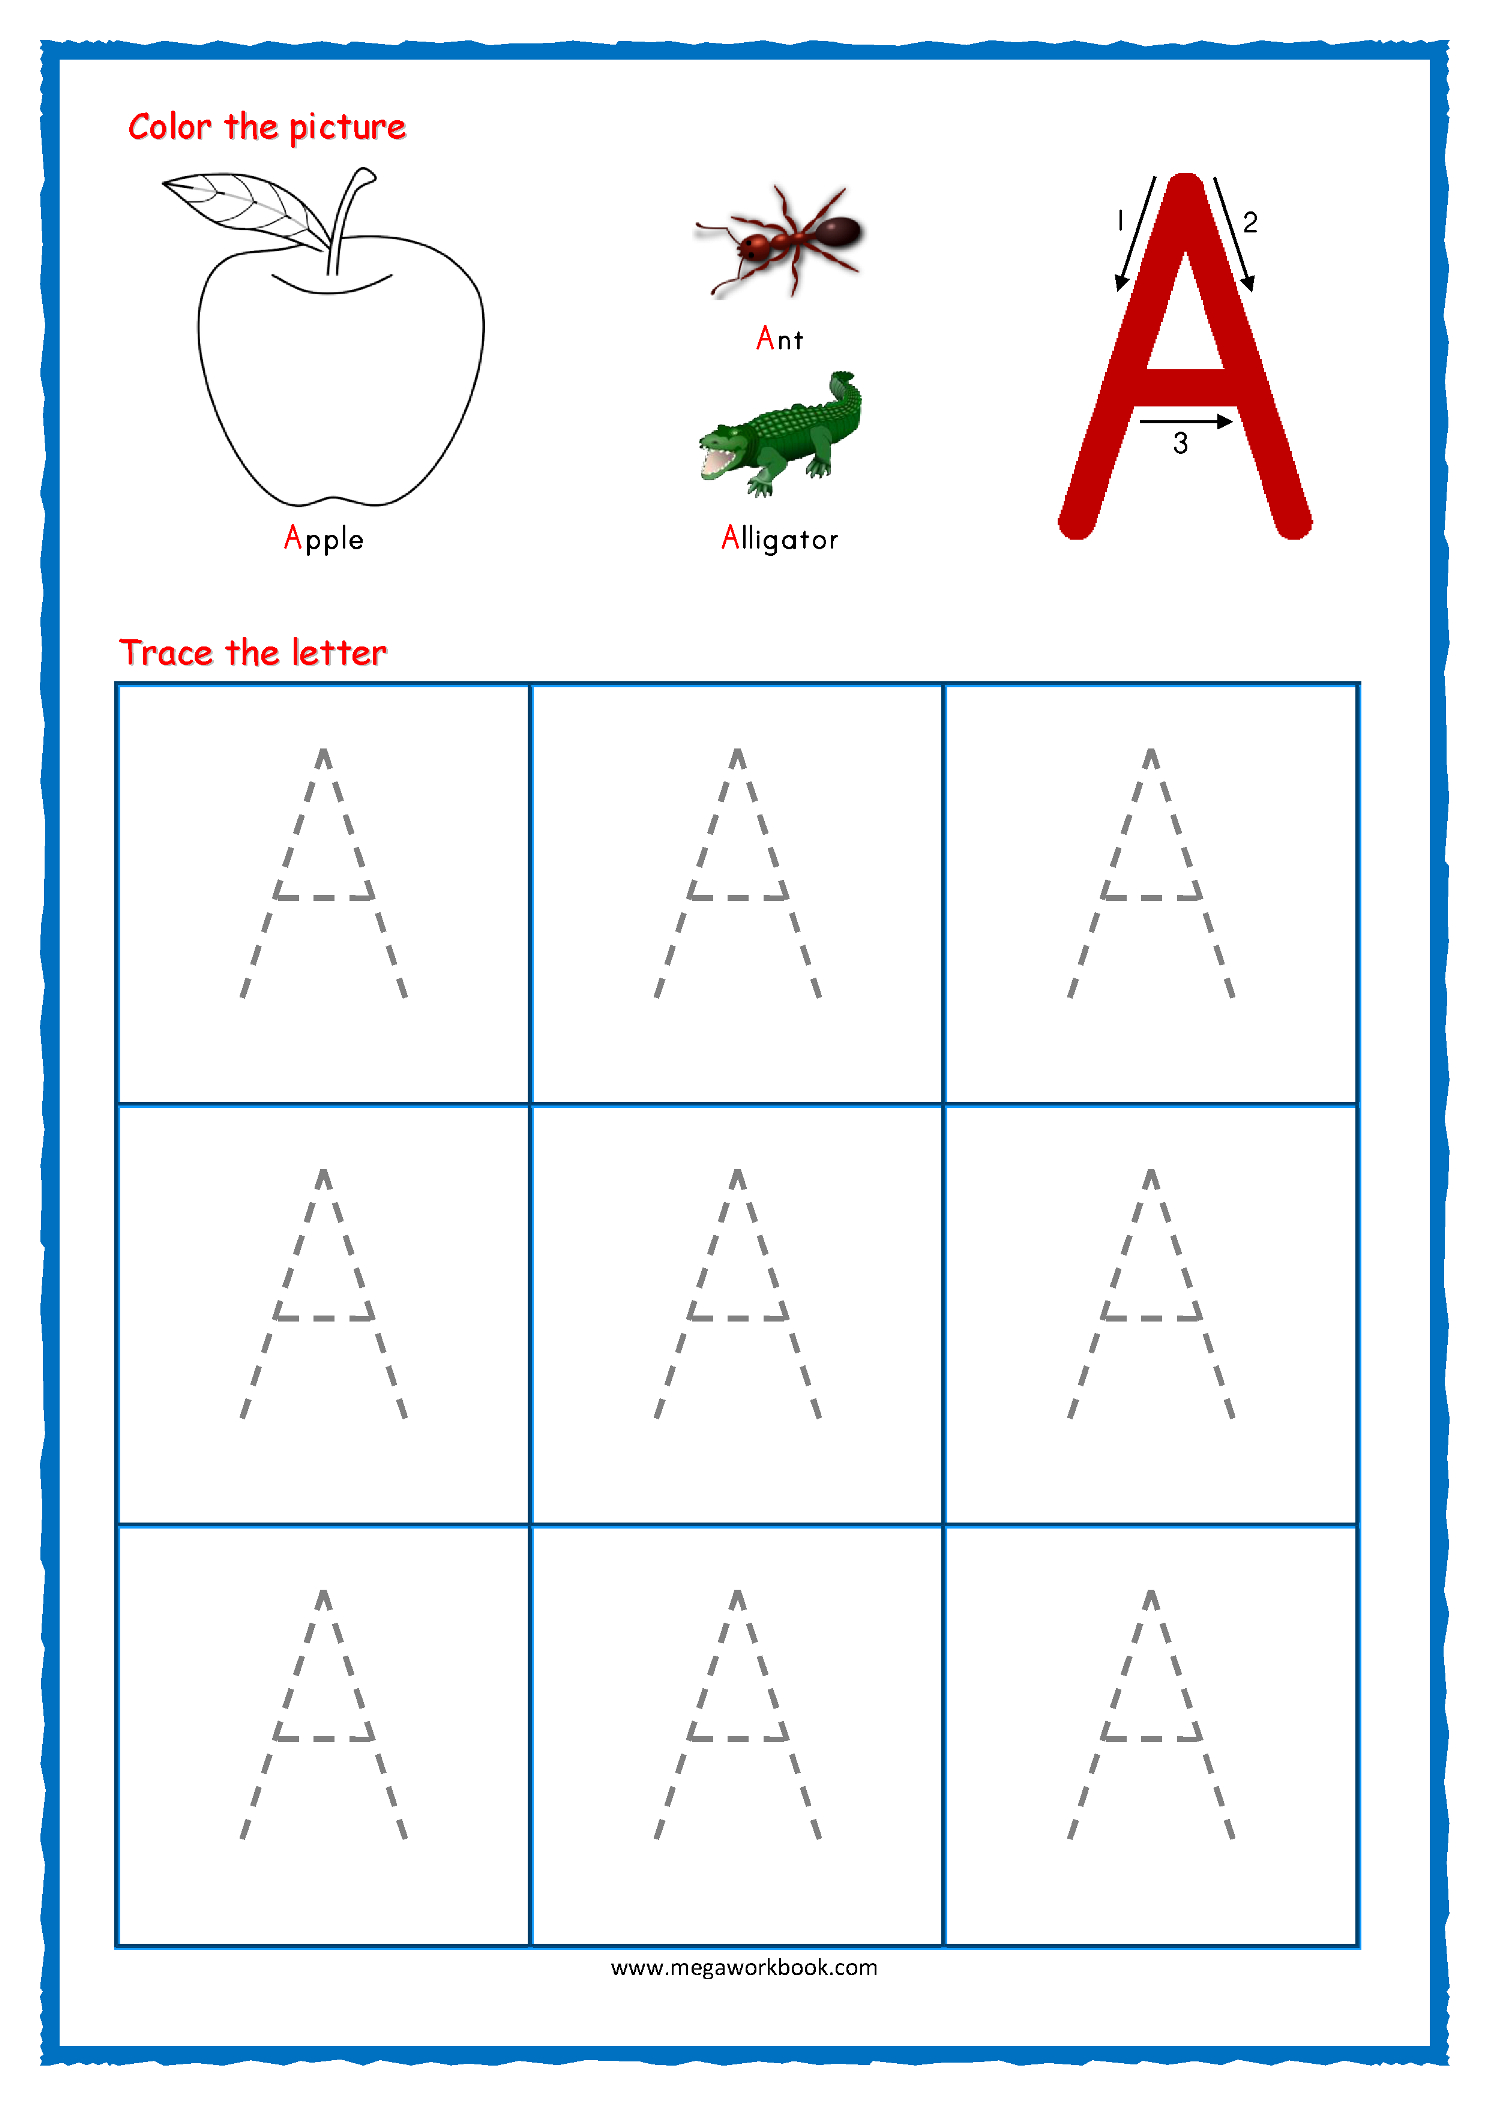 Tracing Letters - Alphabet Tracing - Capital Letters in Alphabet Tracing Worksheets Free